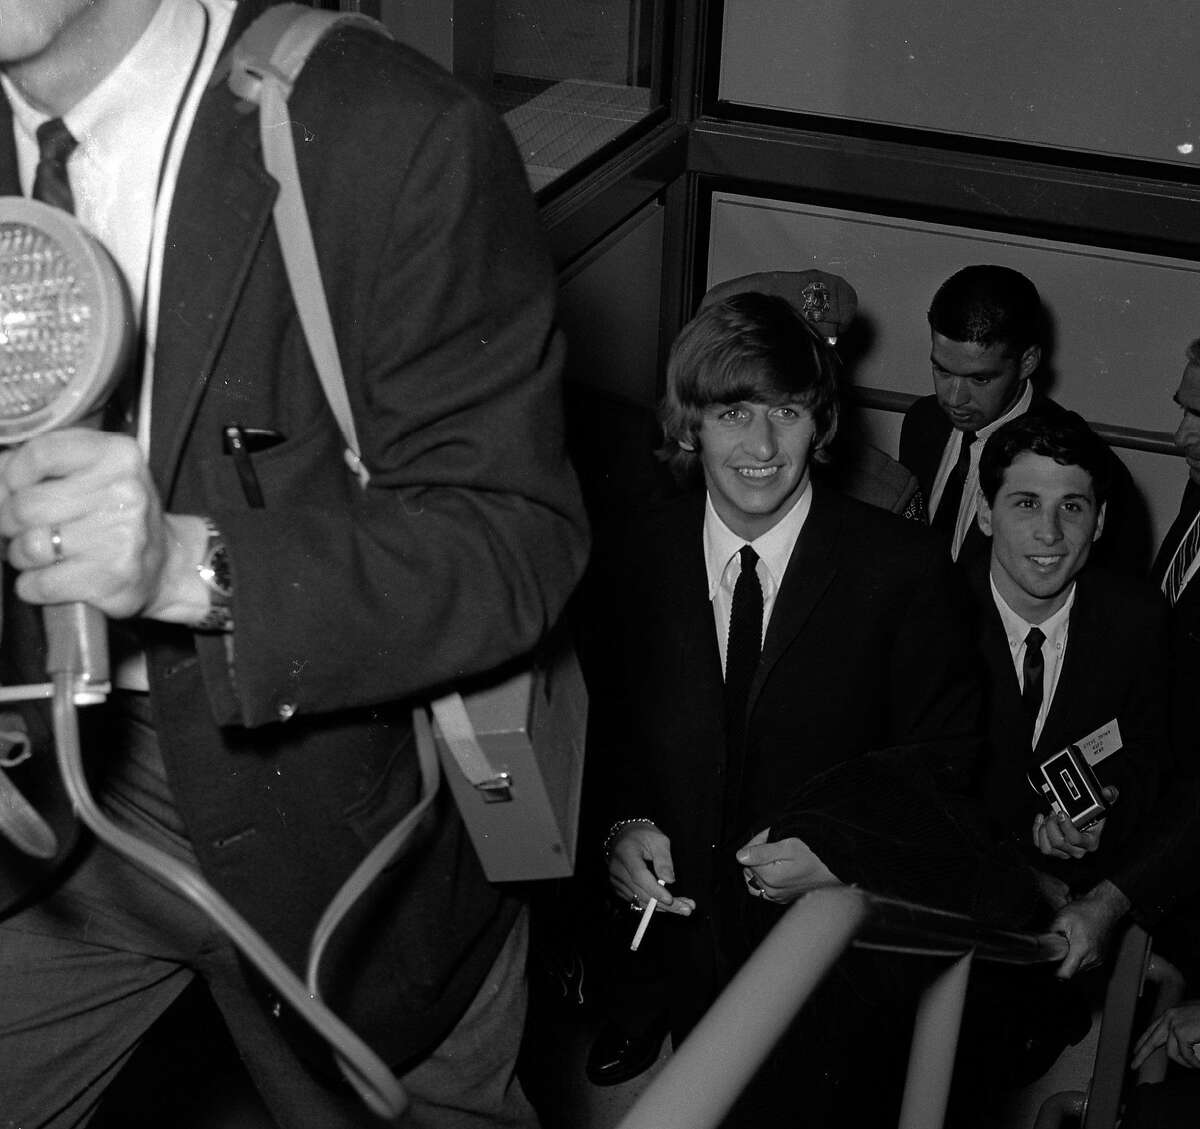 Bedlam at San Francisco International Airport as Ringo Starr of the Beatles stops here to change planes on his way to Australia to rejoin his band mates on their Australian tour